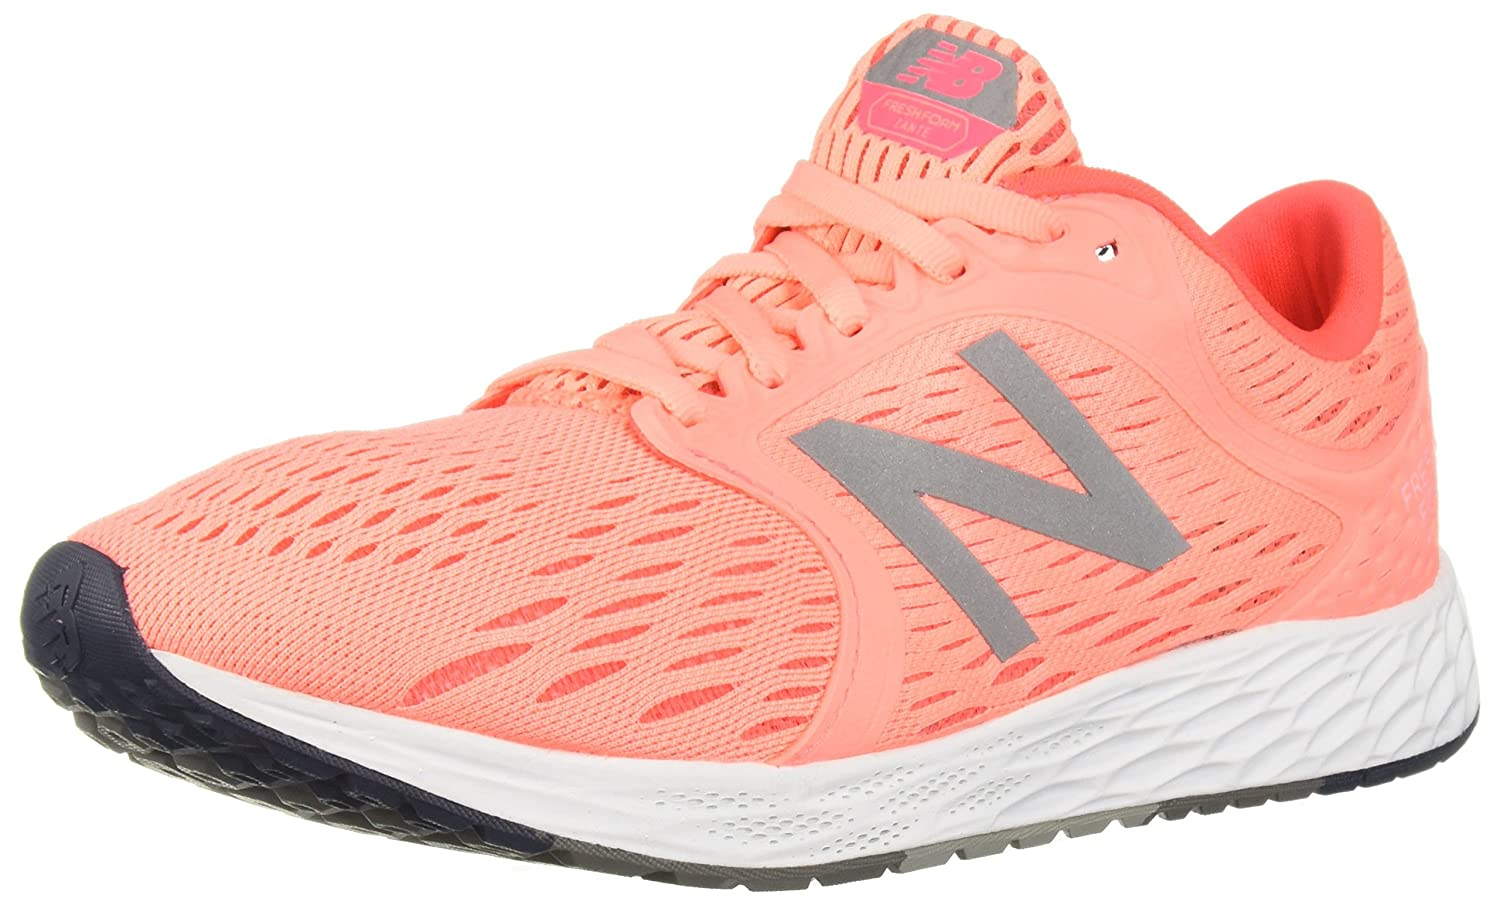 New Balance Women's Zante v4 Fresh Foam Running Shoe B0751Q7NLX 5 B(M) US|Pink